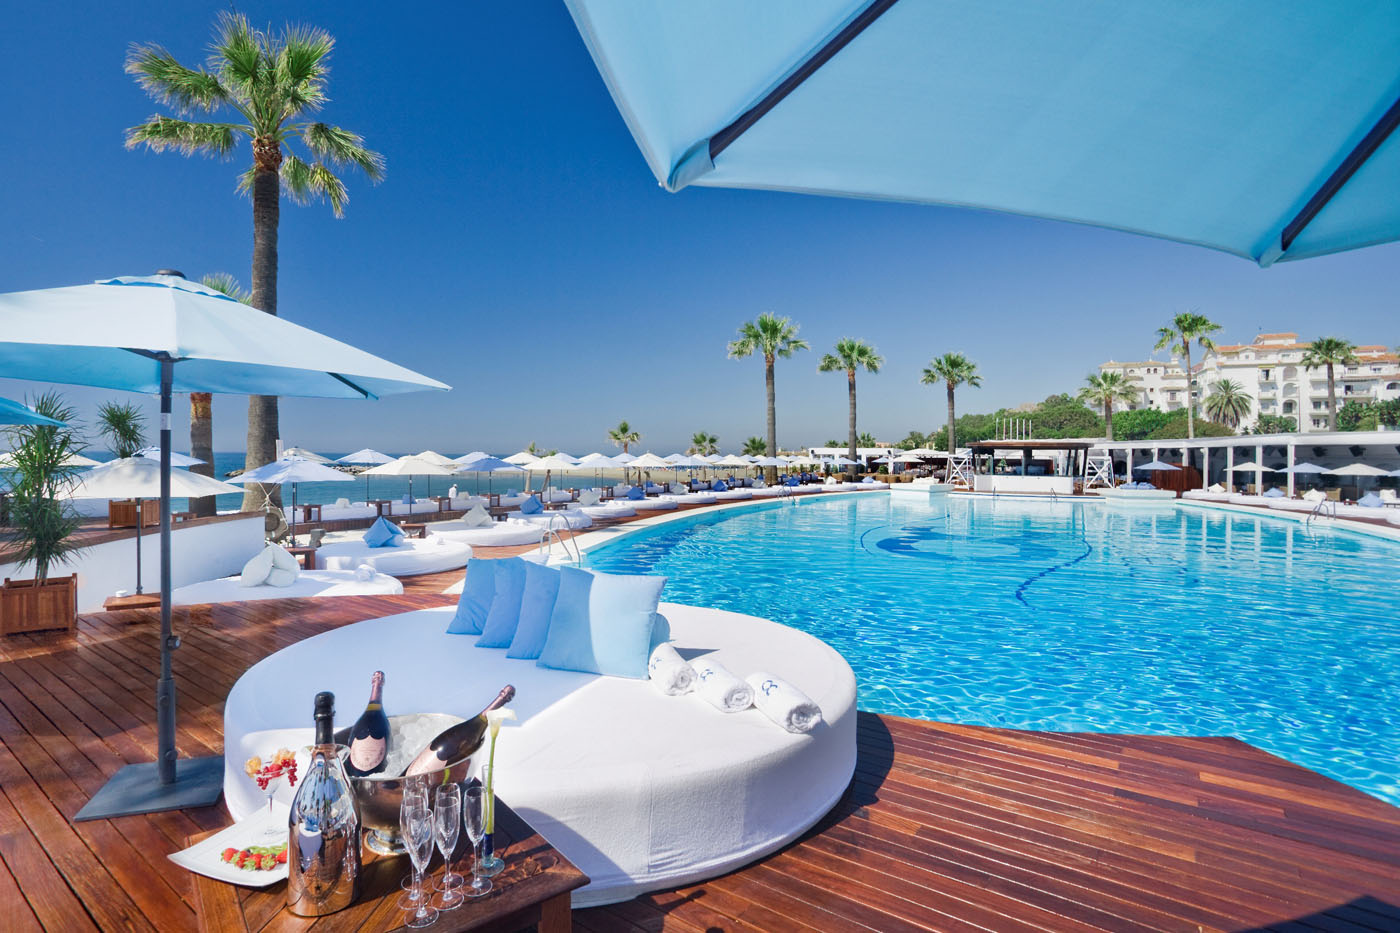 Chill out in the best beach clubs